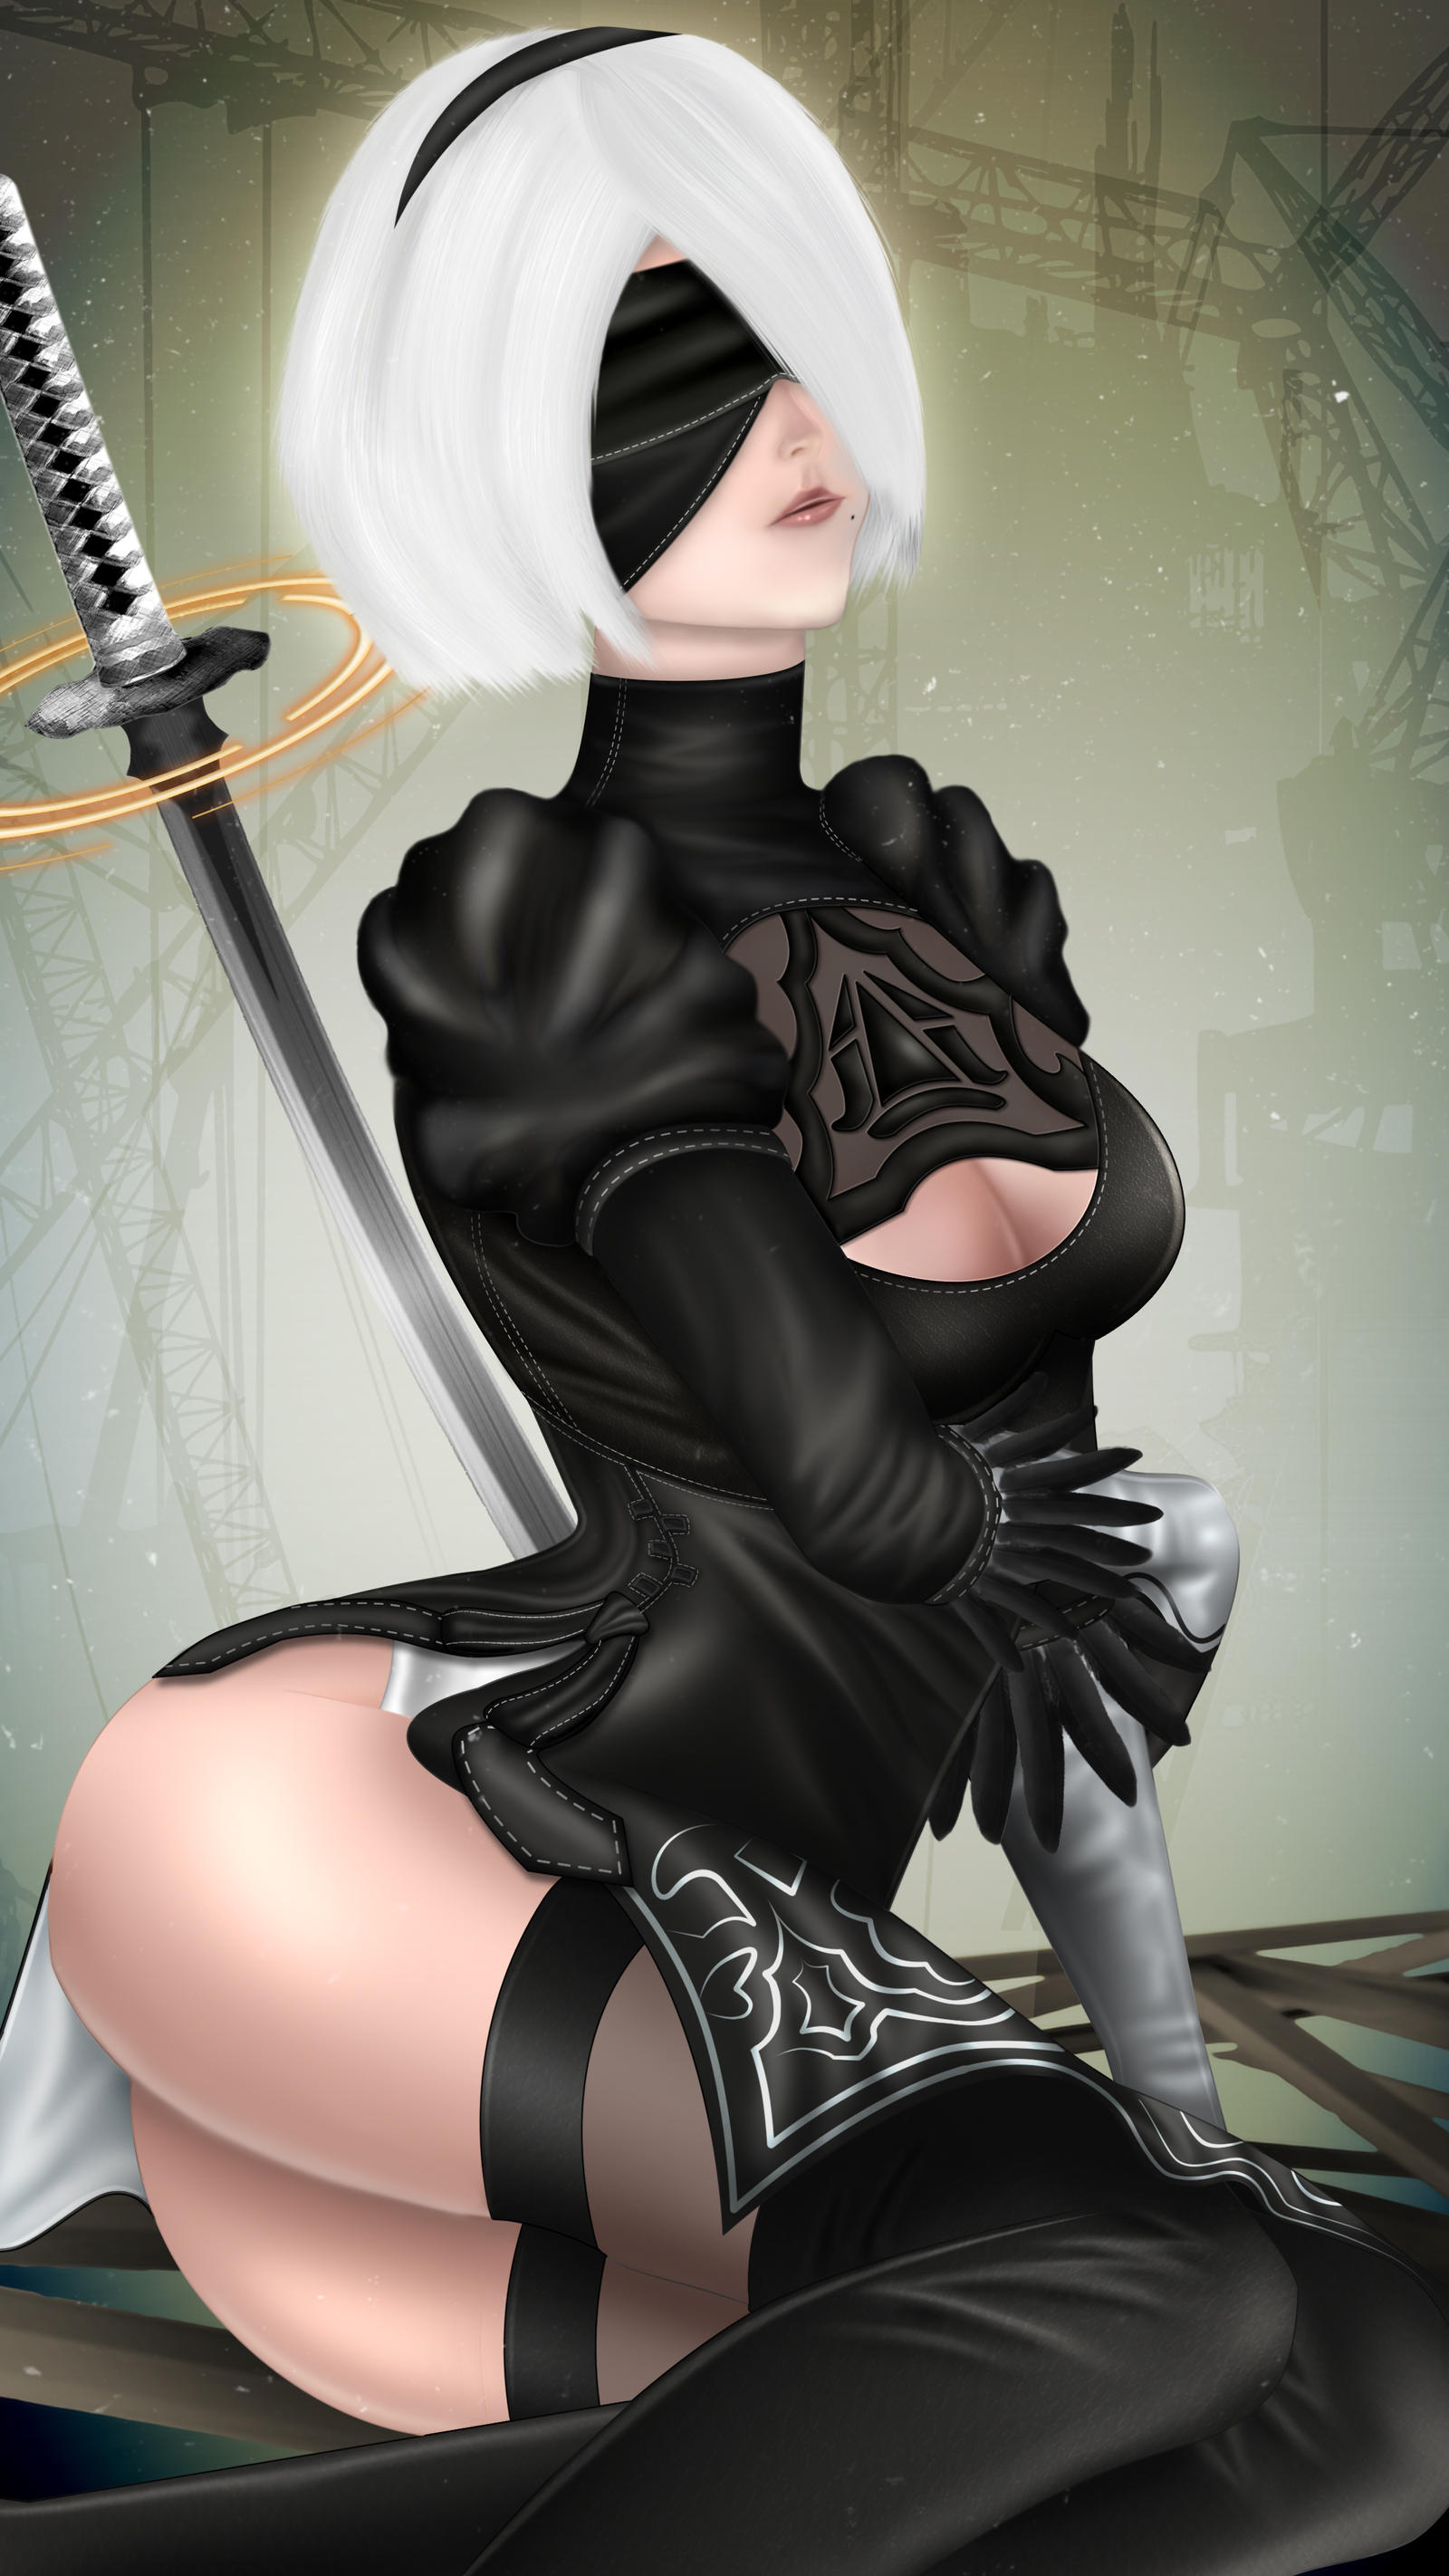 2B by GGGdemon